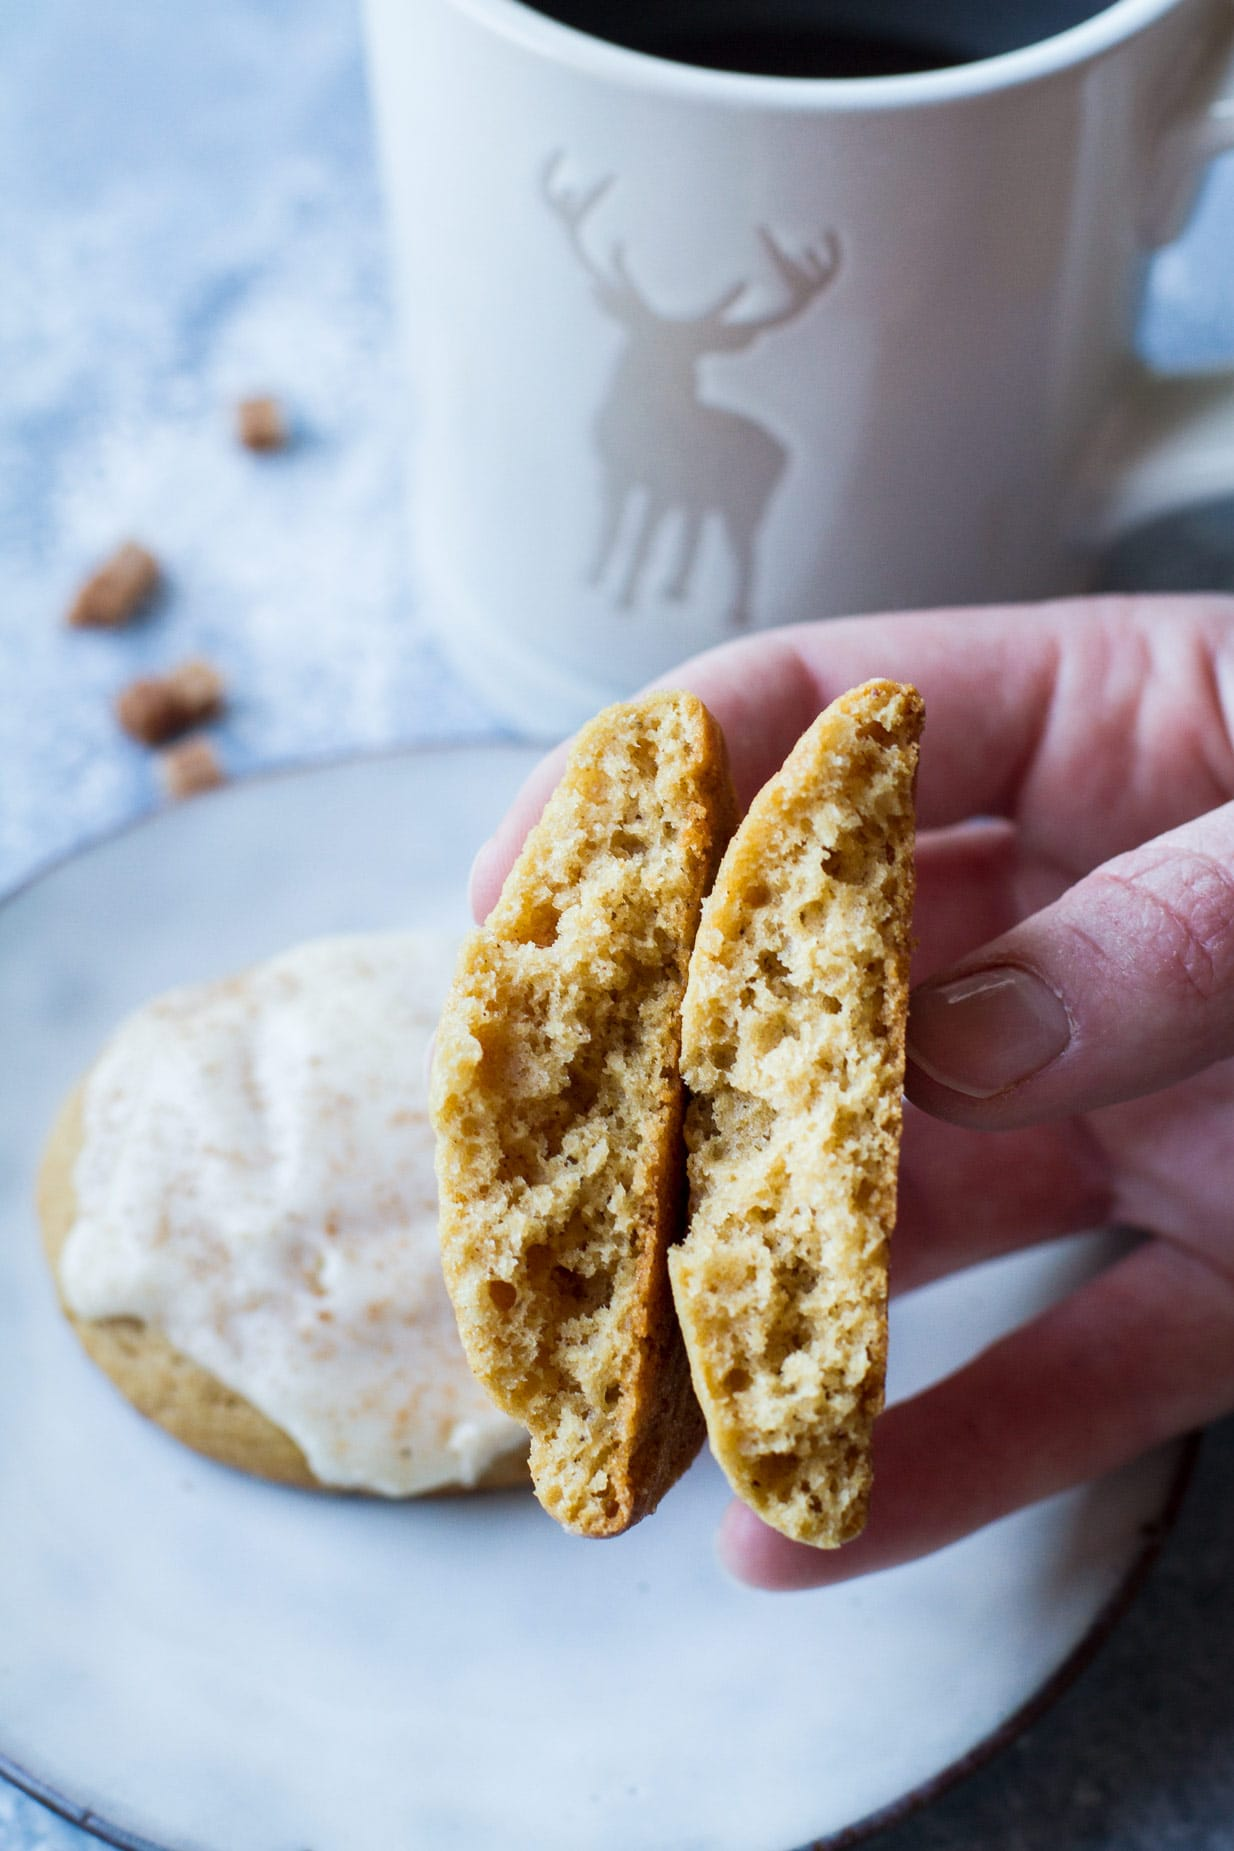 Vixen's Soft and Chewy Eggnog Cookies